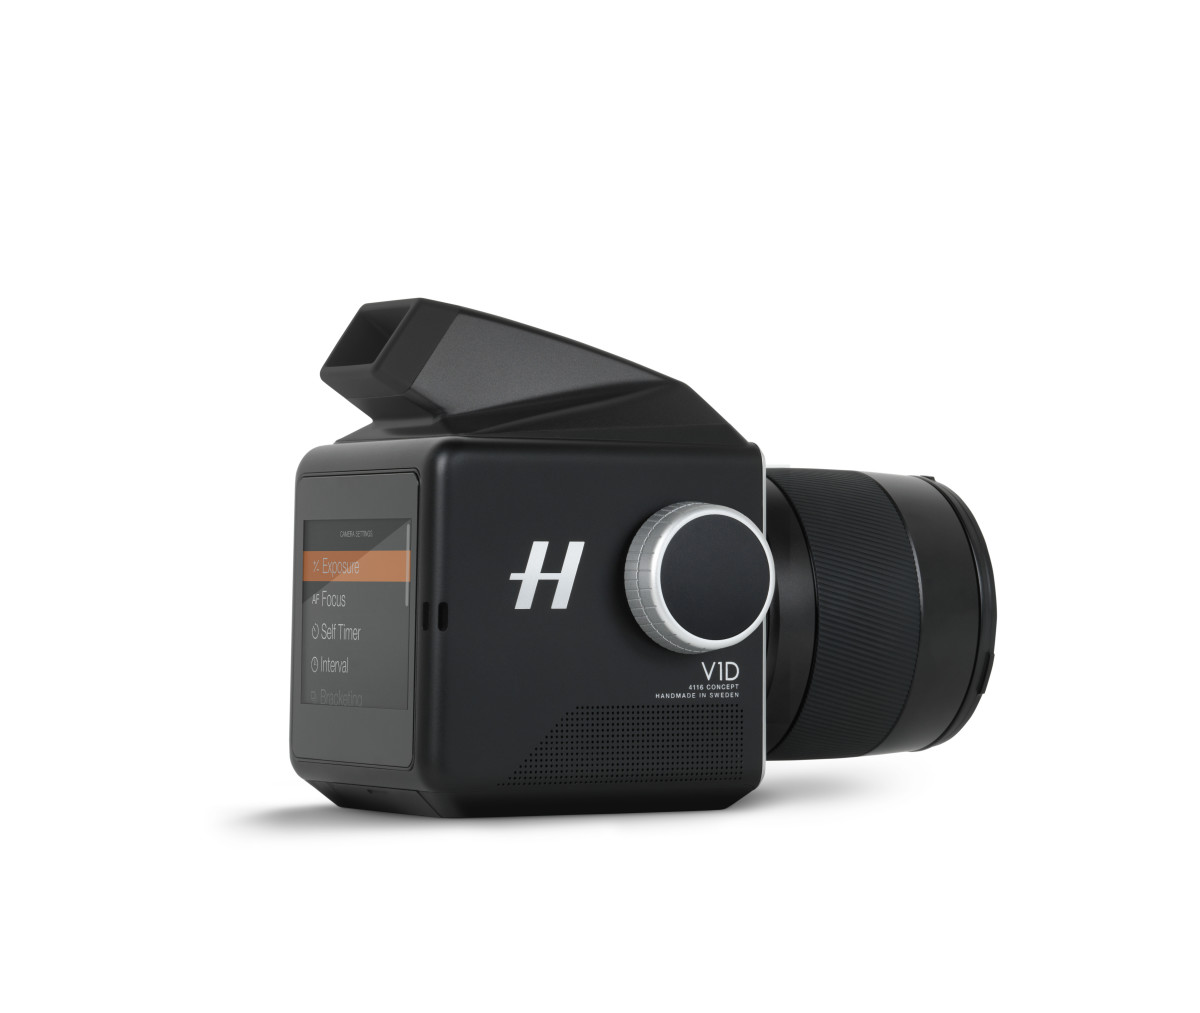 Hasselblad V1d Concept Rear Quarter